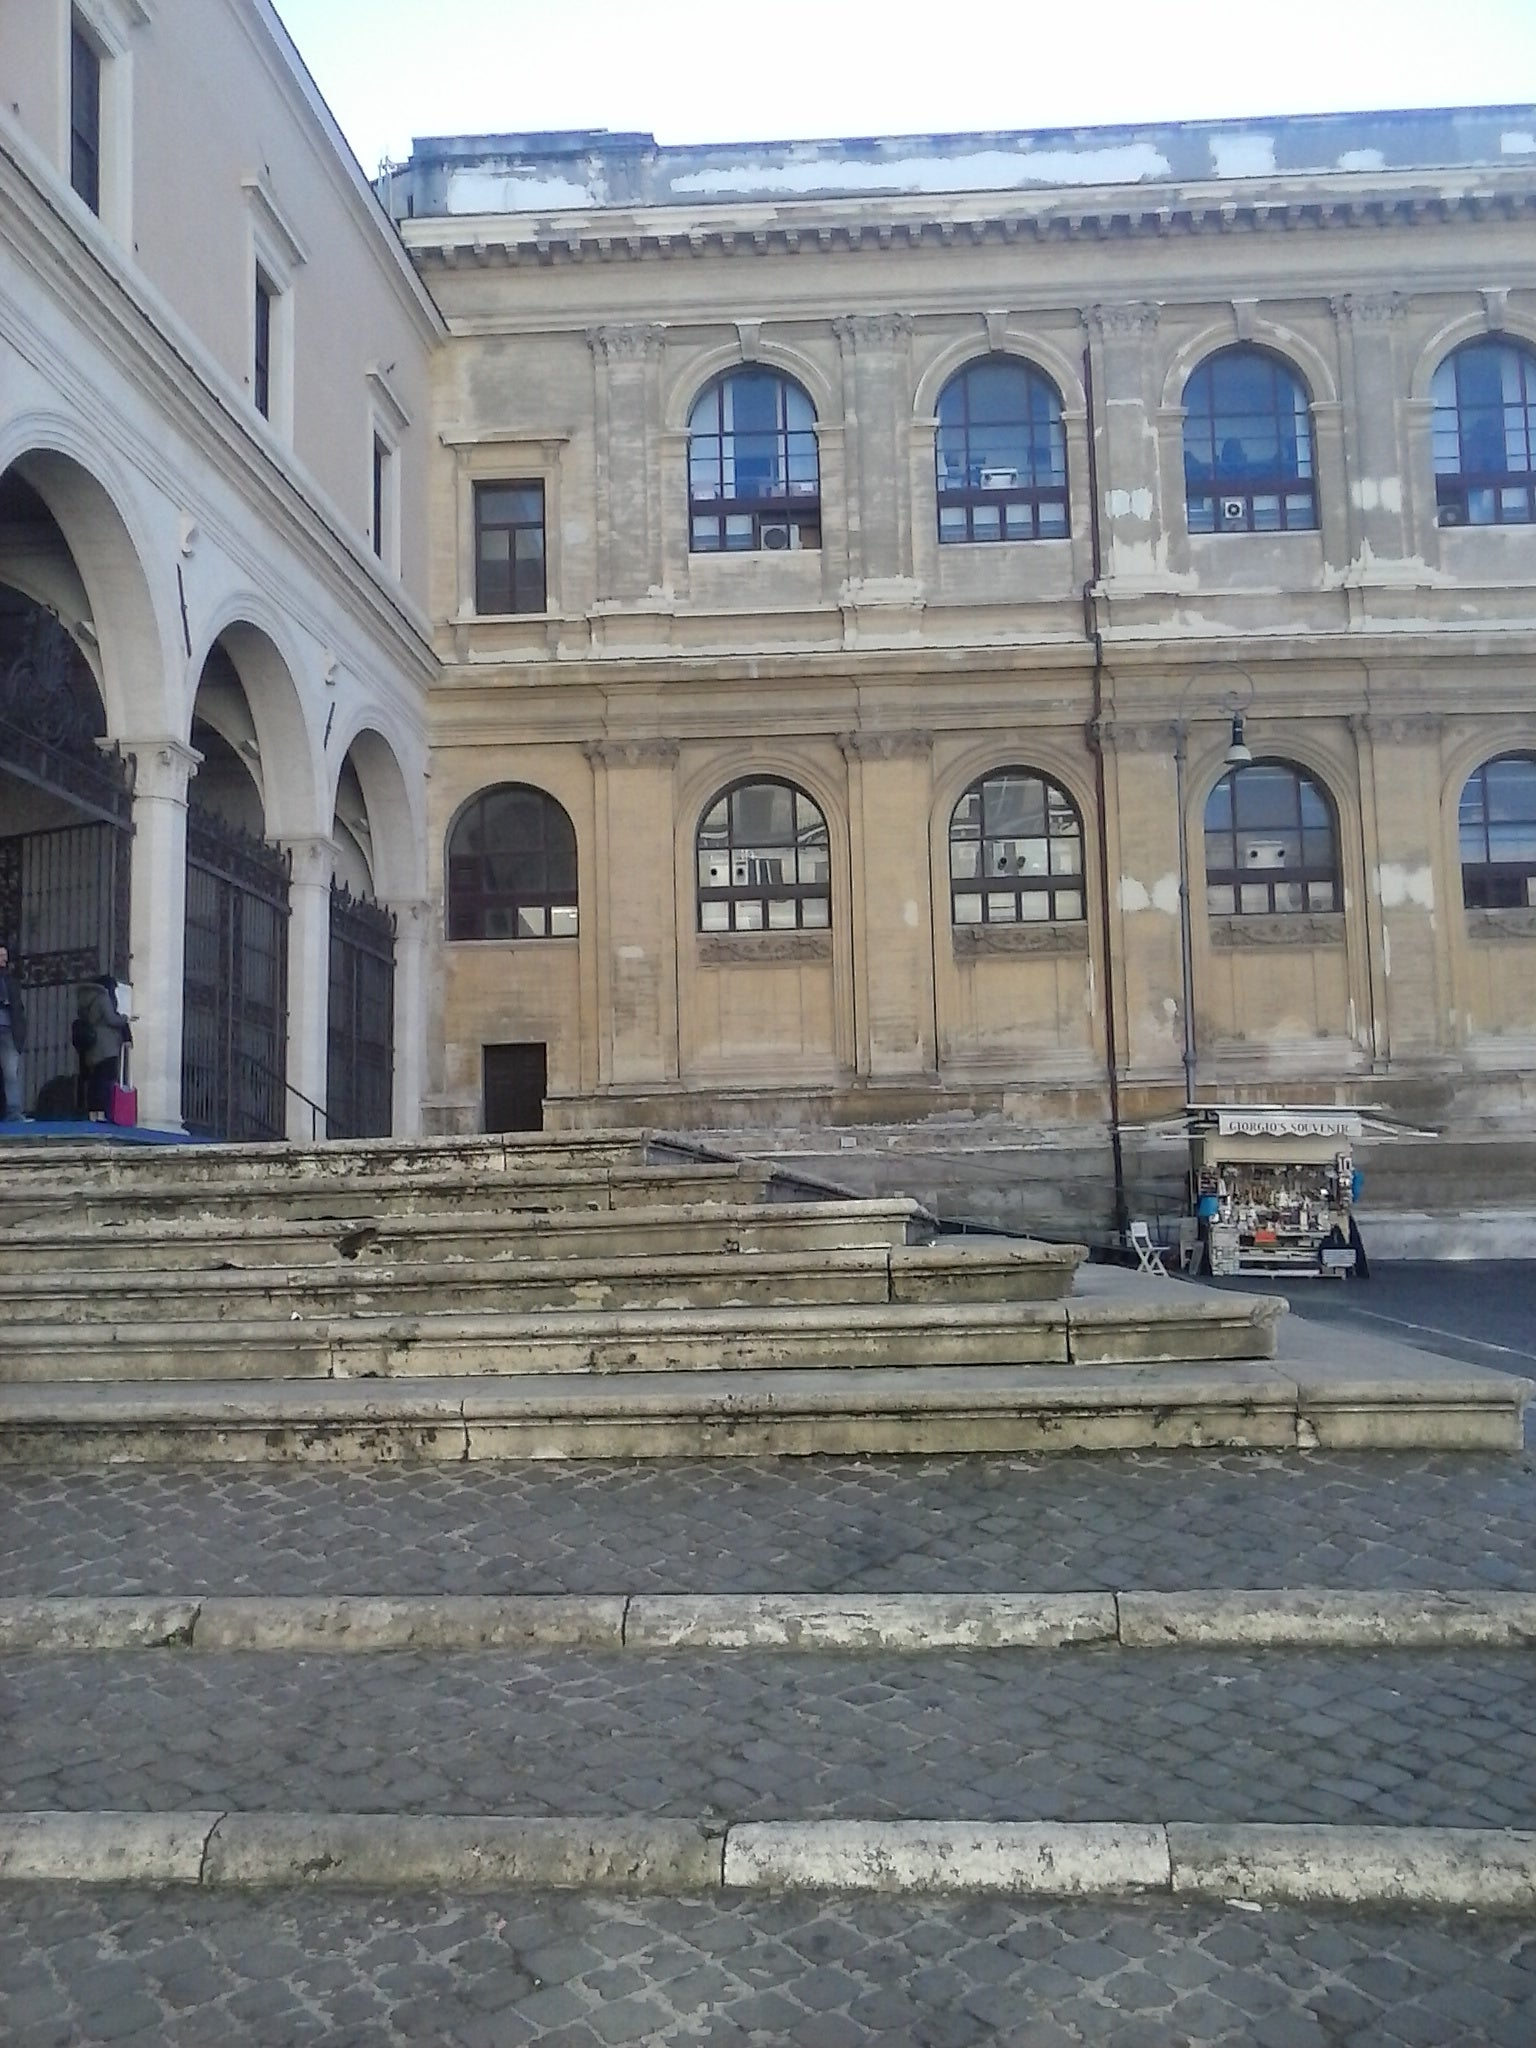 Palace in Piazza di San Pietro in Vincoli